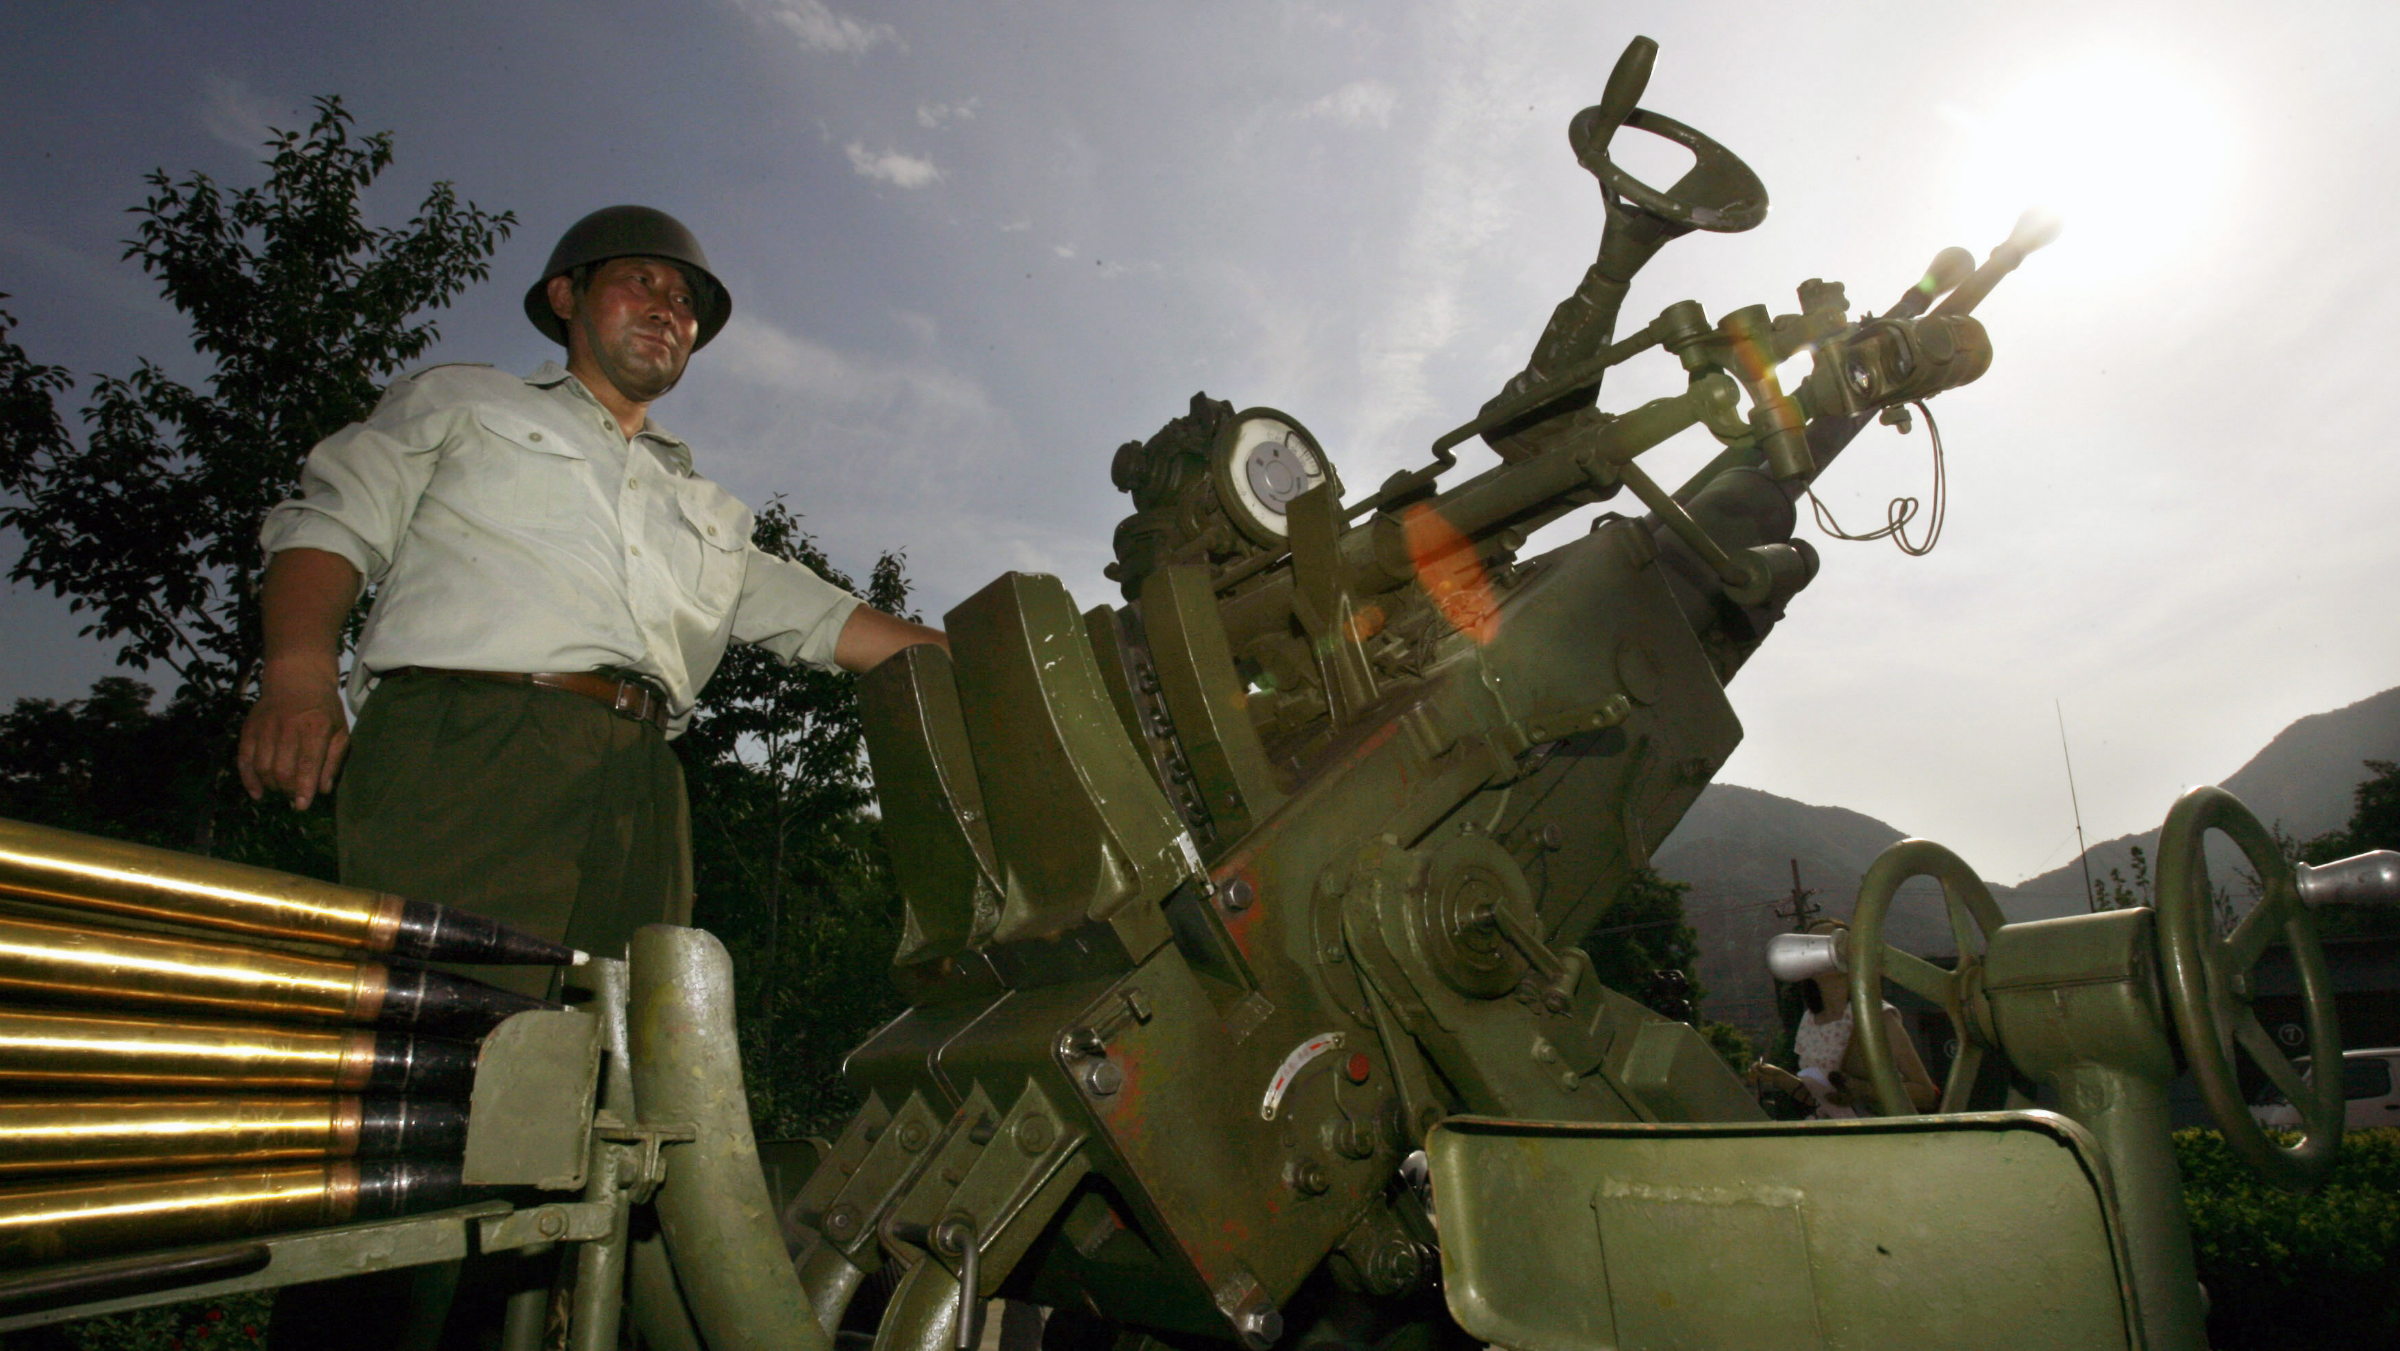 In this July 19, 2007 file picture, an artillery operator stands next to an artillery used to seed clouds to induce rain at a station of the Beijing Meteorological Bureau in Beijing, China. Beijing regularly uses cloud seeding techniques to improve the local weather conditions and the bureau has been tasked to ensure optimum weather conditions for the 2008 Olympic Games.